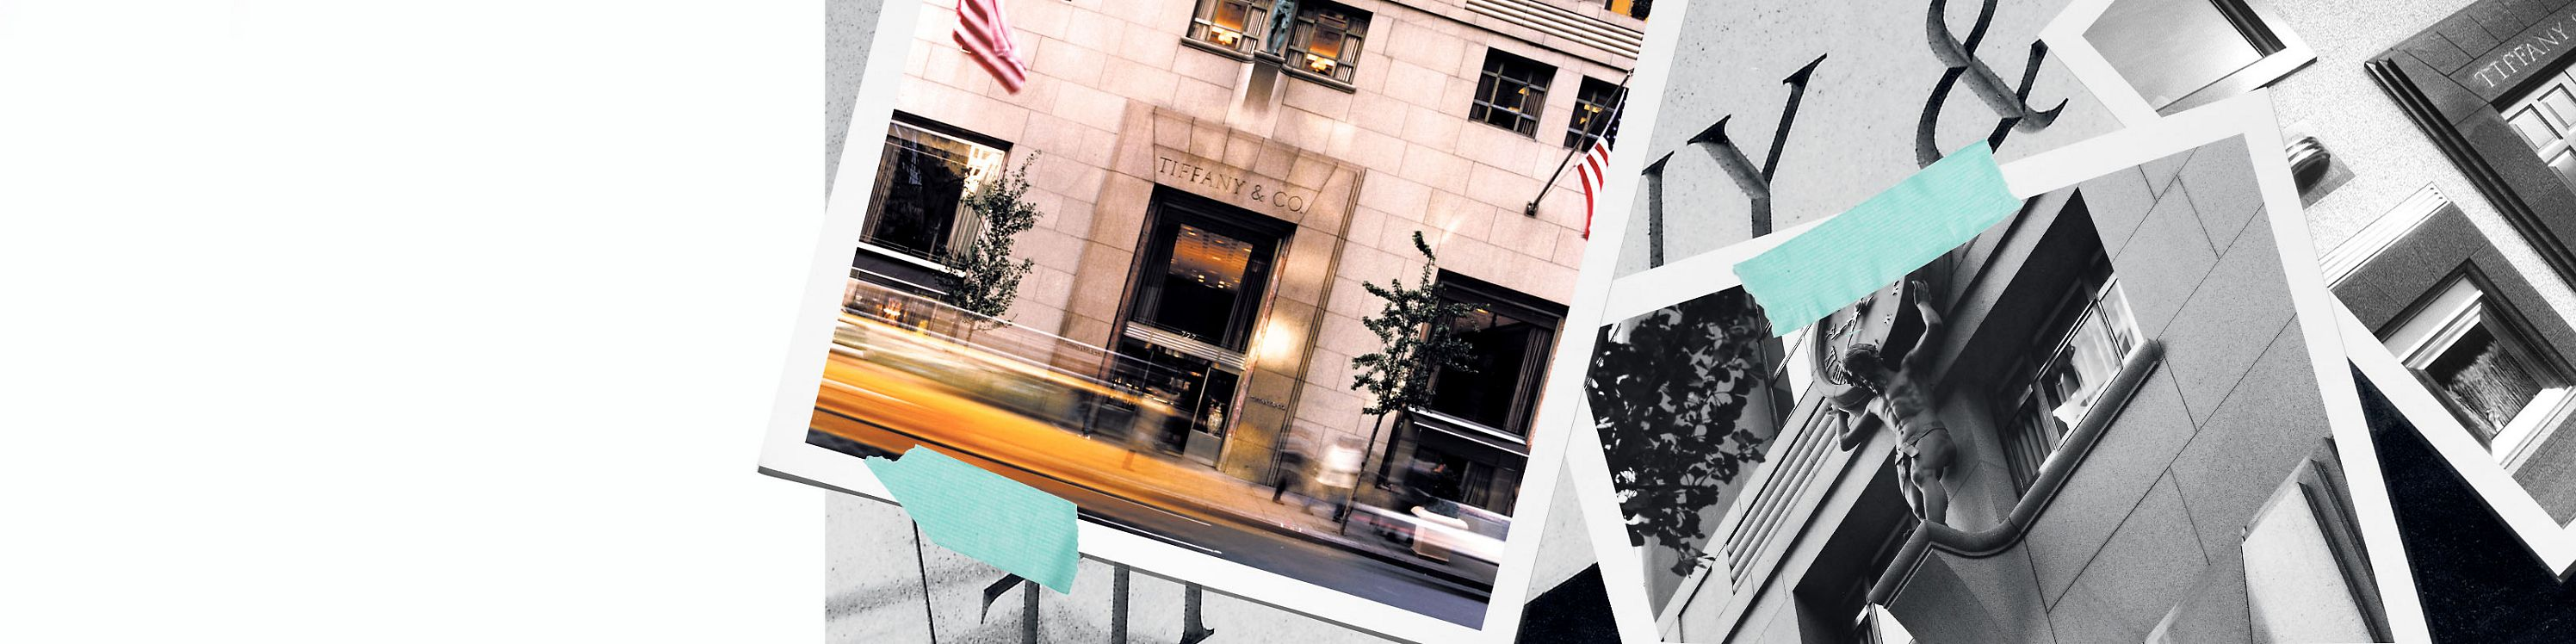 Tiffany Store Locations | Tiffany & Co